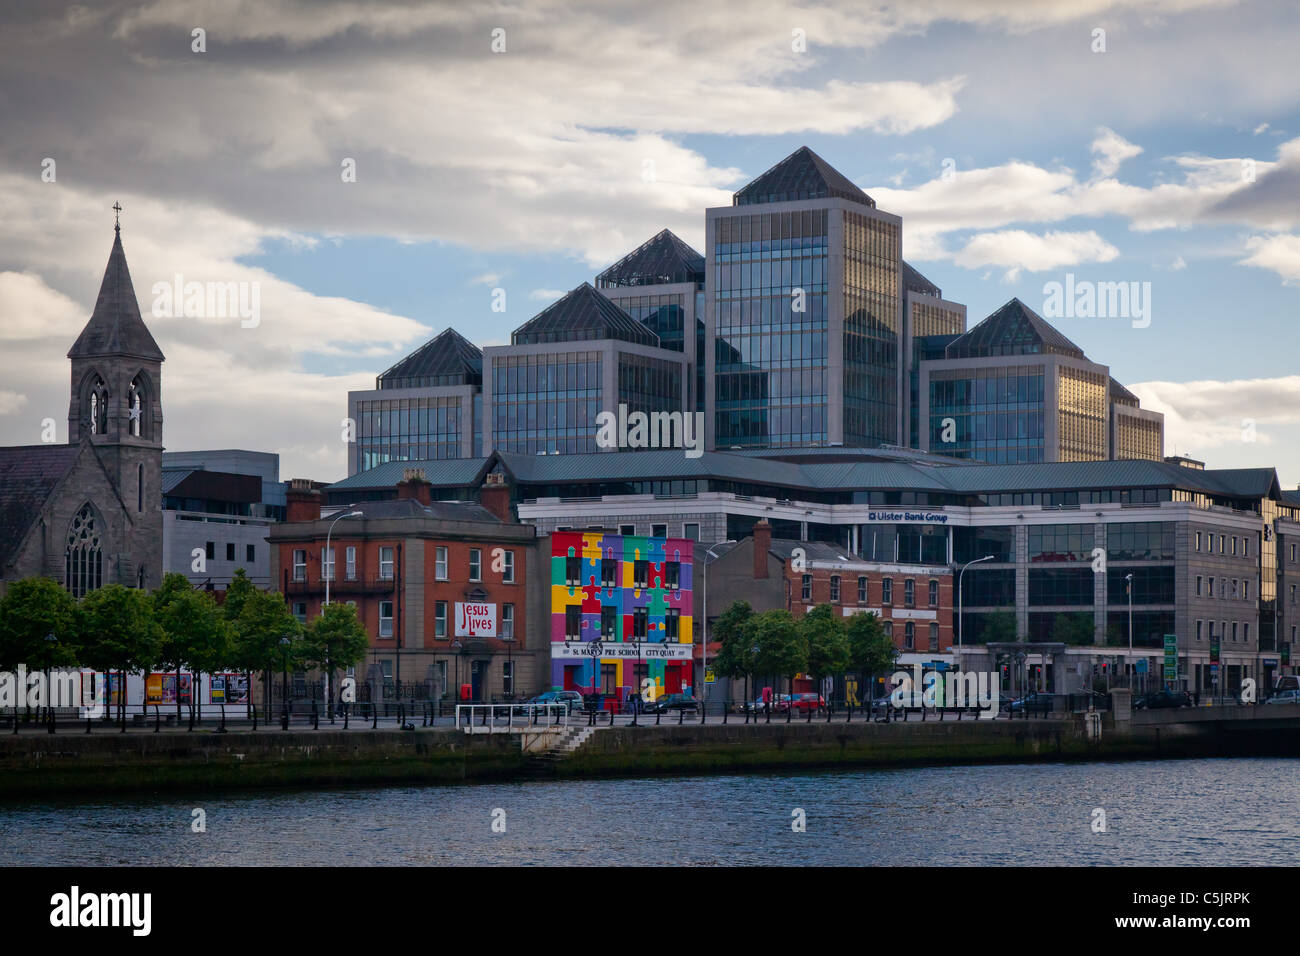 Downtown buildings and the river Liffey in Dublin, Ireland - Stock Image